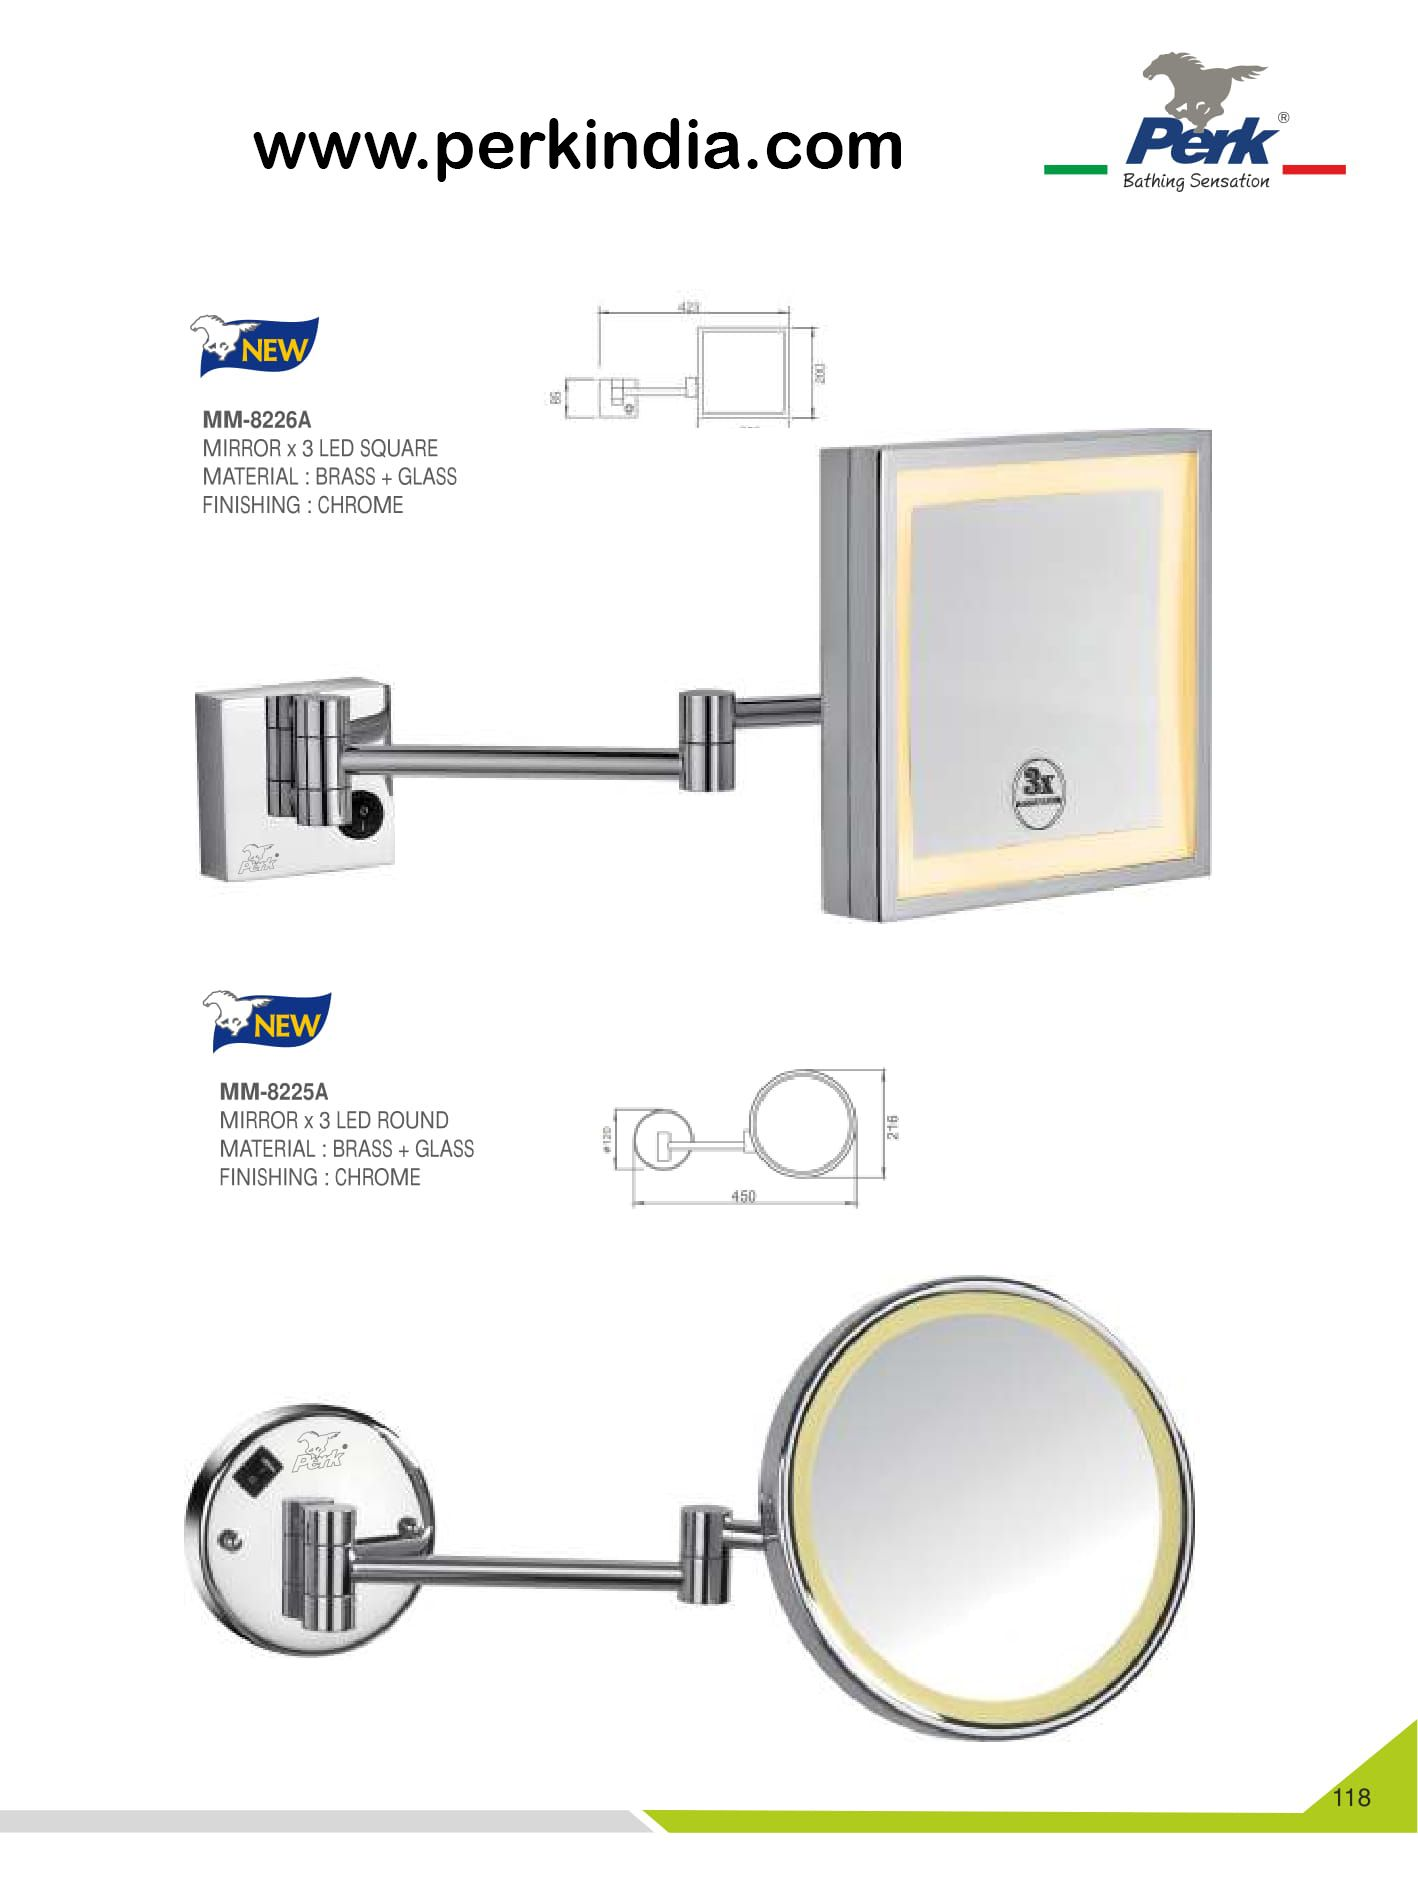 Perkindia Offers A Unique Designs Of Mirror For Your Luxury